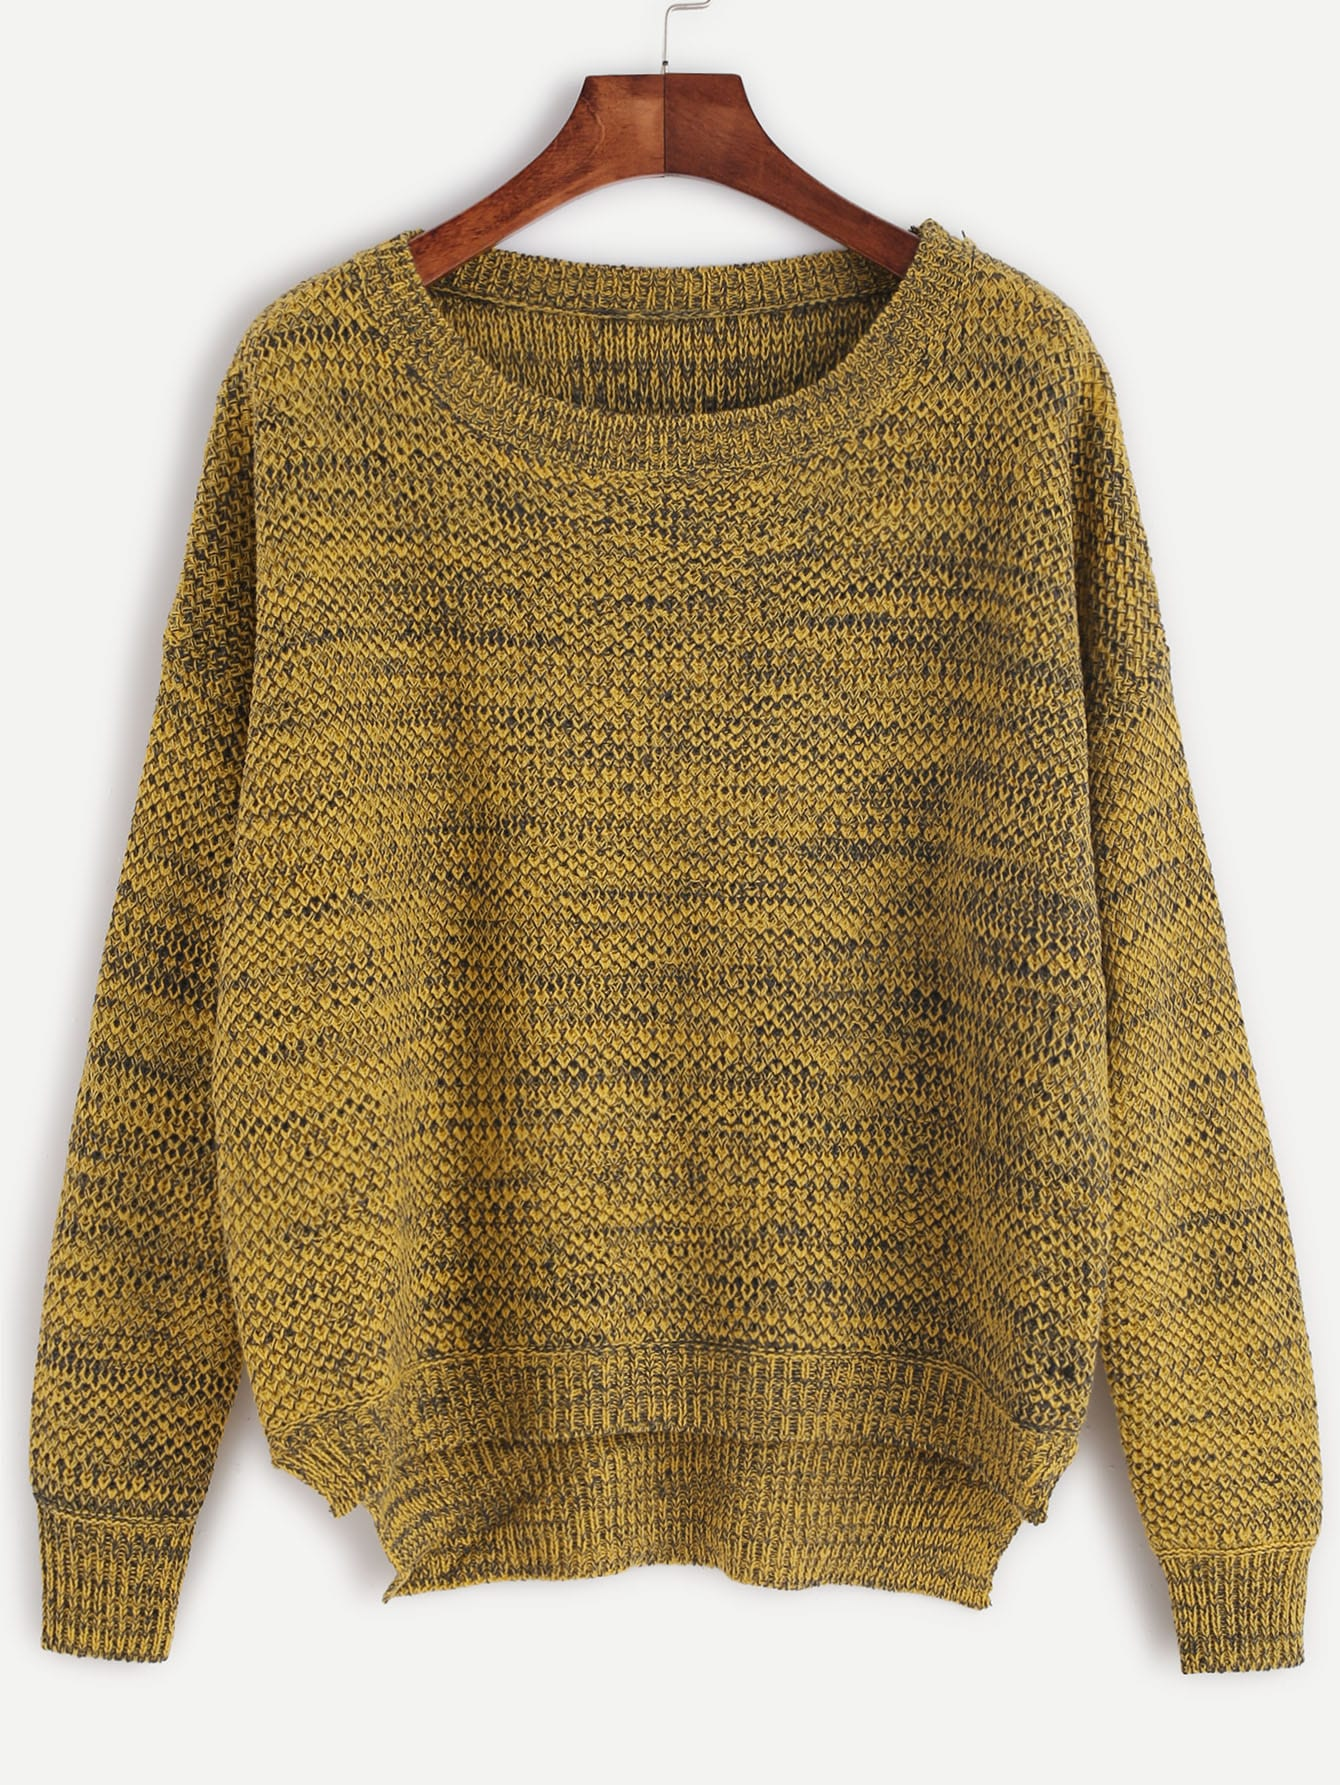 Yellow Marled Knit Side Slit SweaterYellow Marled Knit Side Slit Sweater<br><br>color: Yellow<br>size: one-size